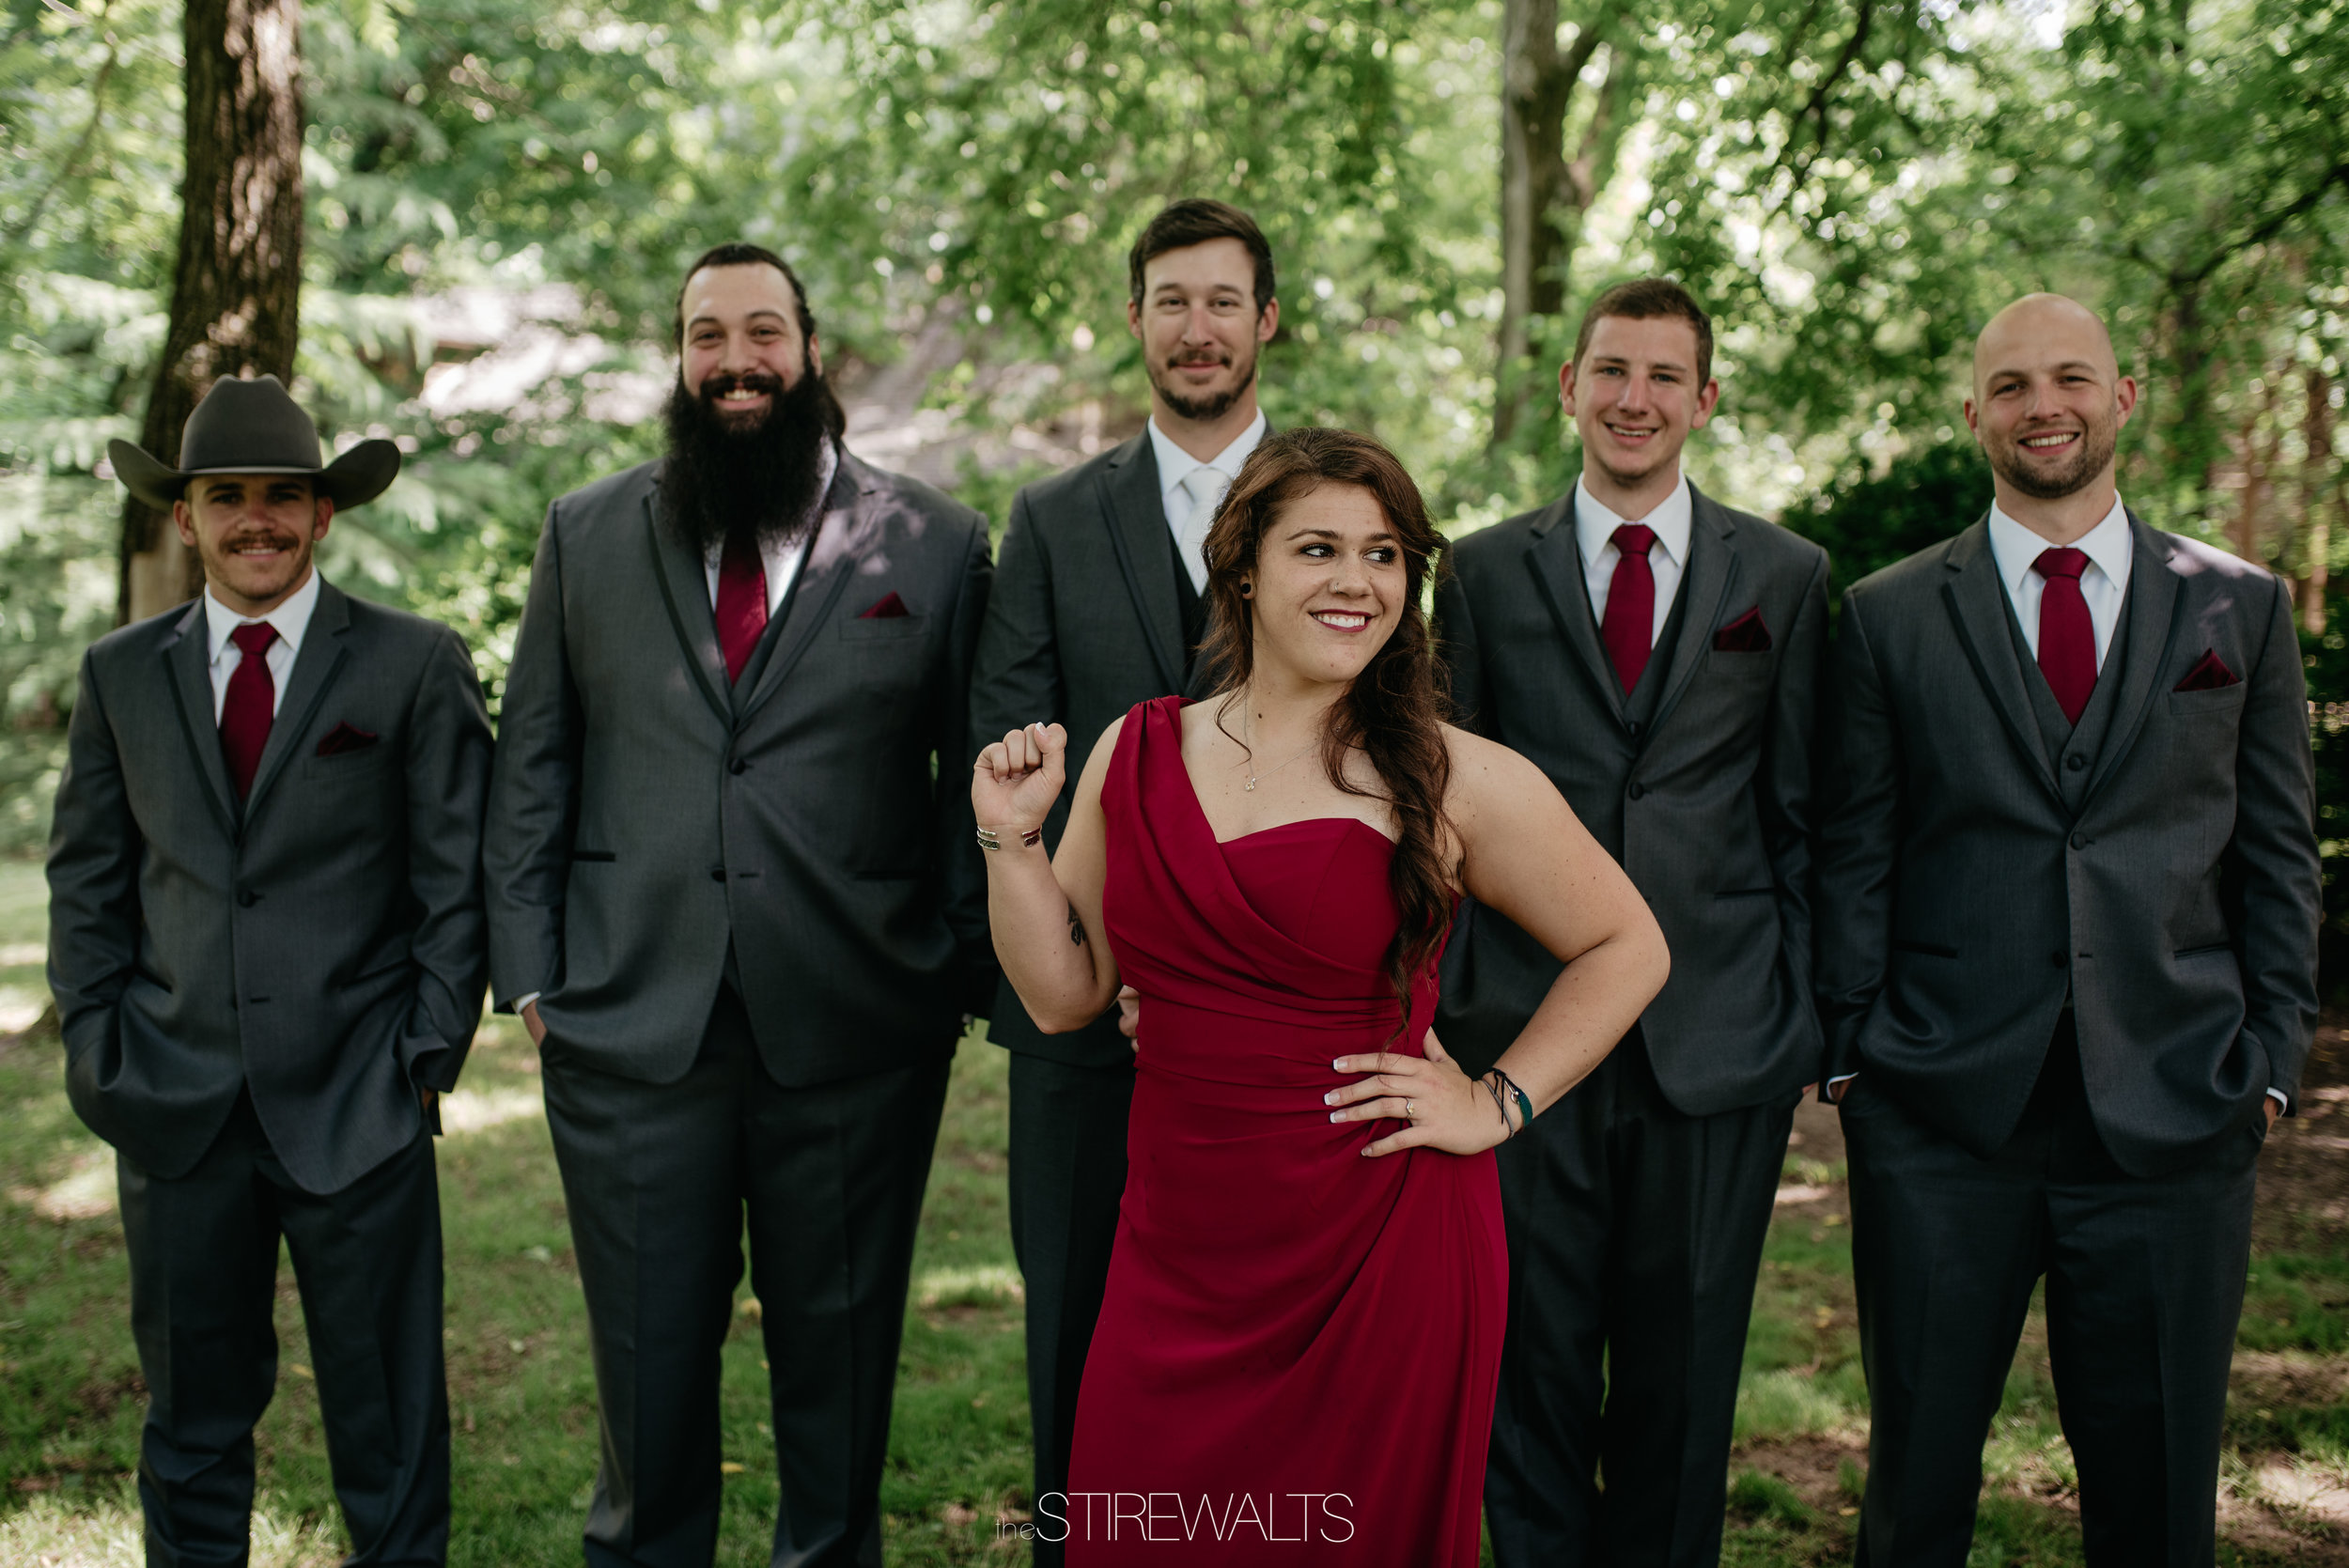 Kayla.Jay.Wedding.Blog.2018.©TheStirewalts-70.jpg